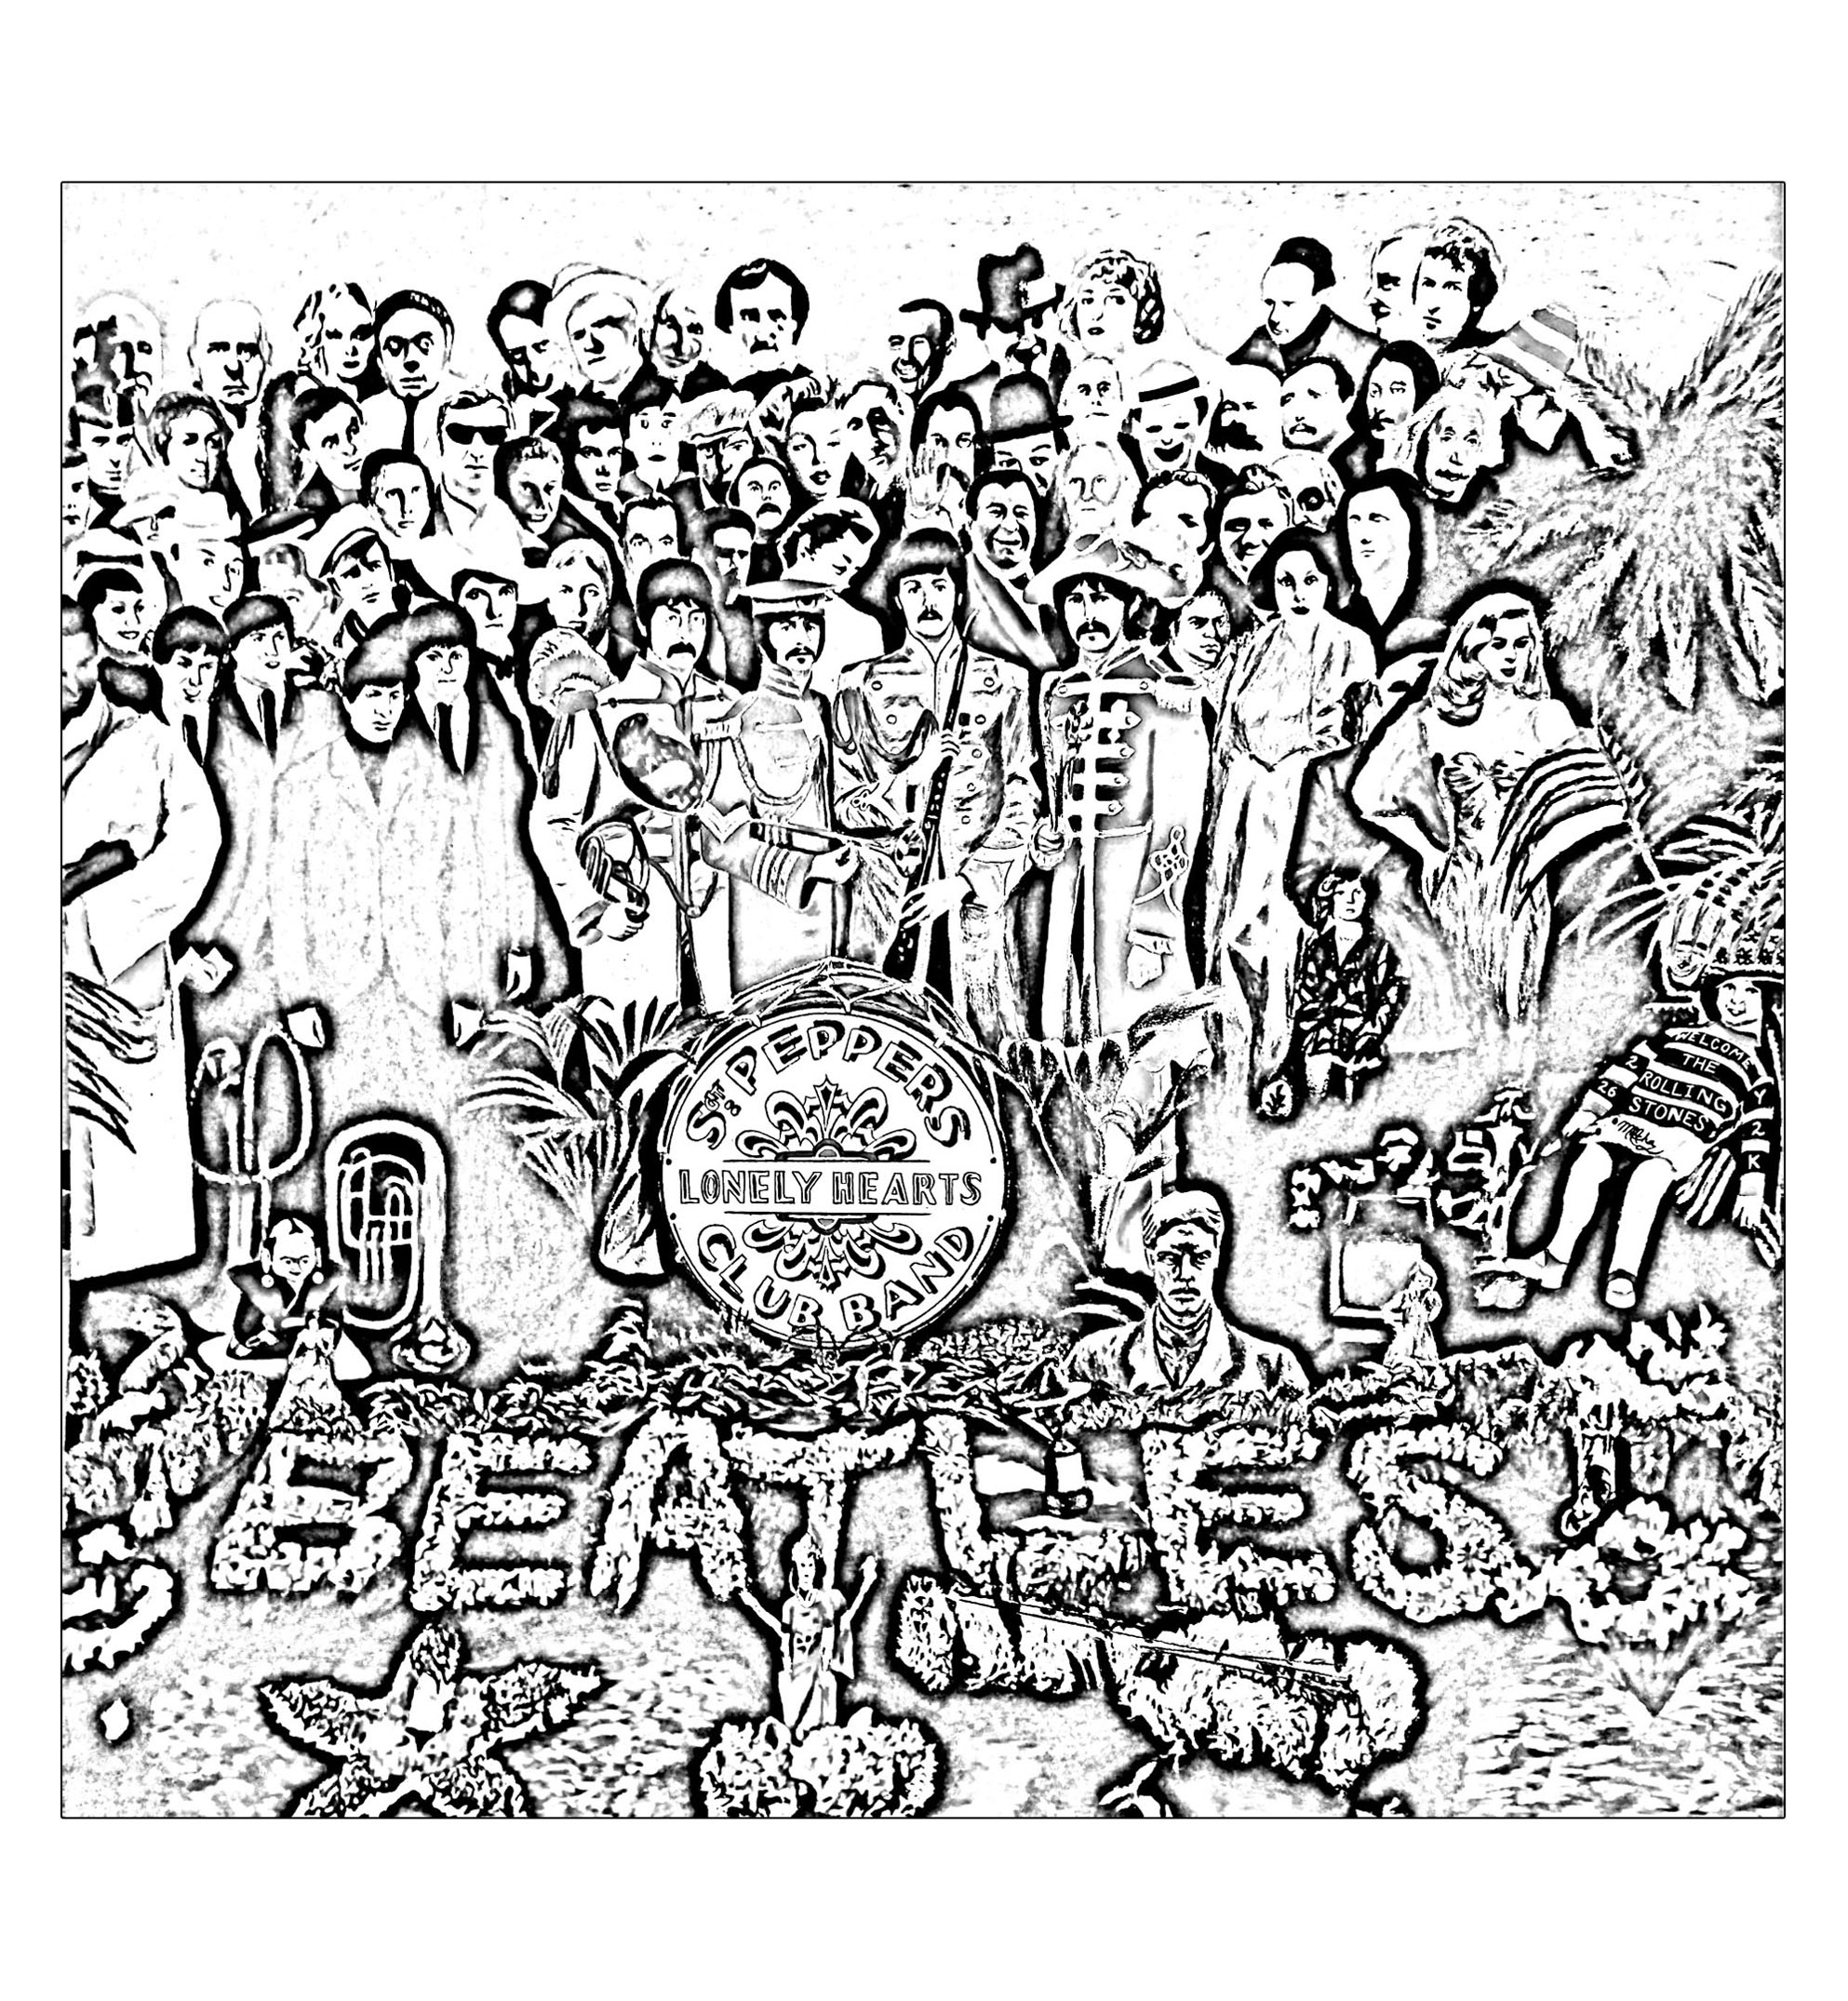 1986x2150 The Beatles Sgt Peppers Lonely Hearts Club Band Psychedelic